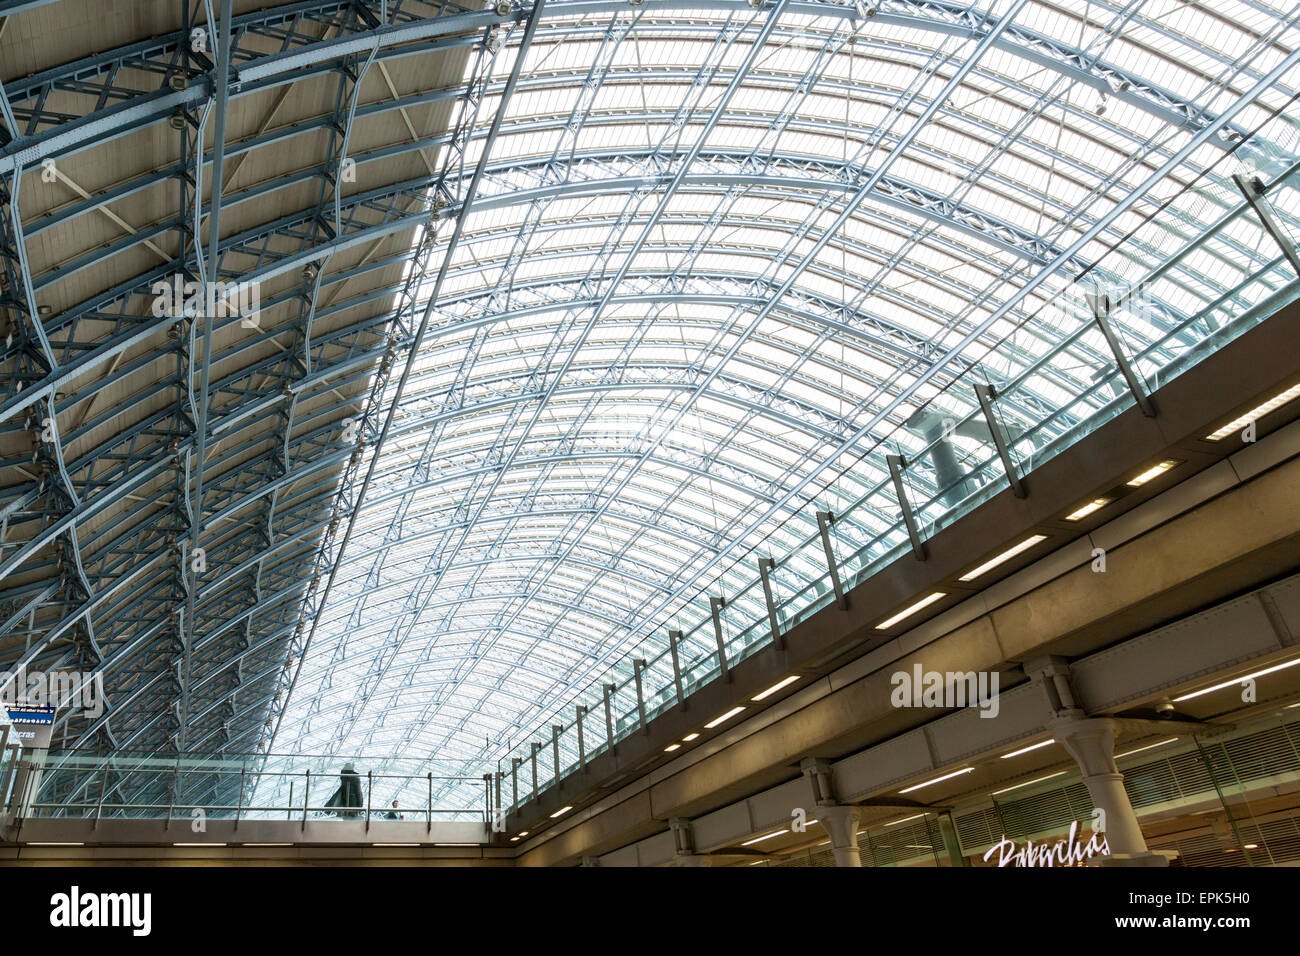 The curved glass roof of St Pancras Station, London, England, UK - Stock Image